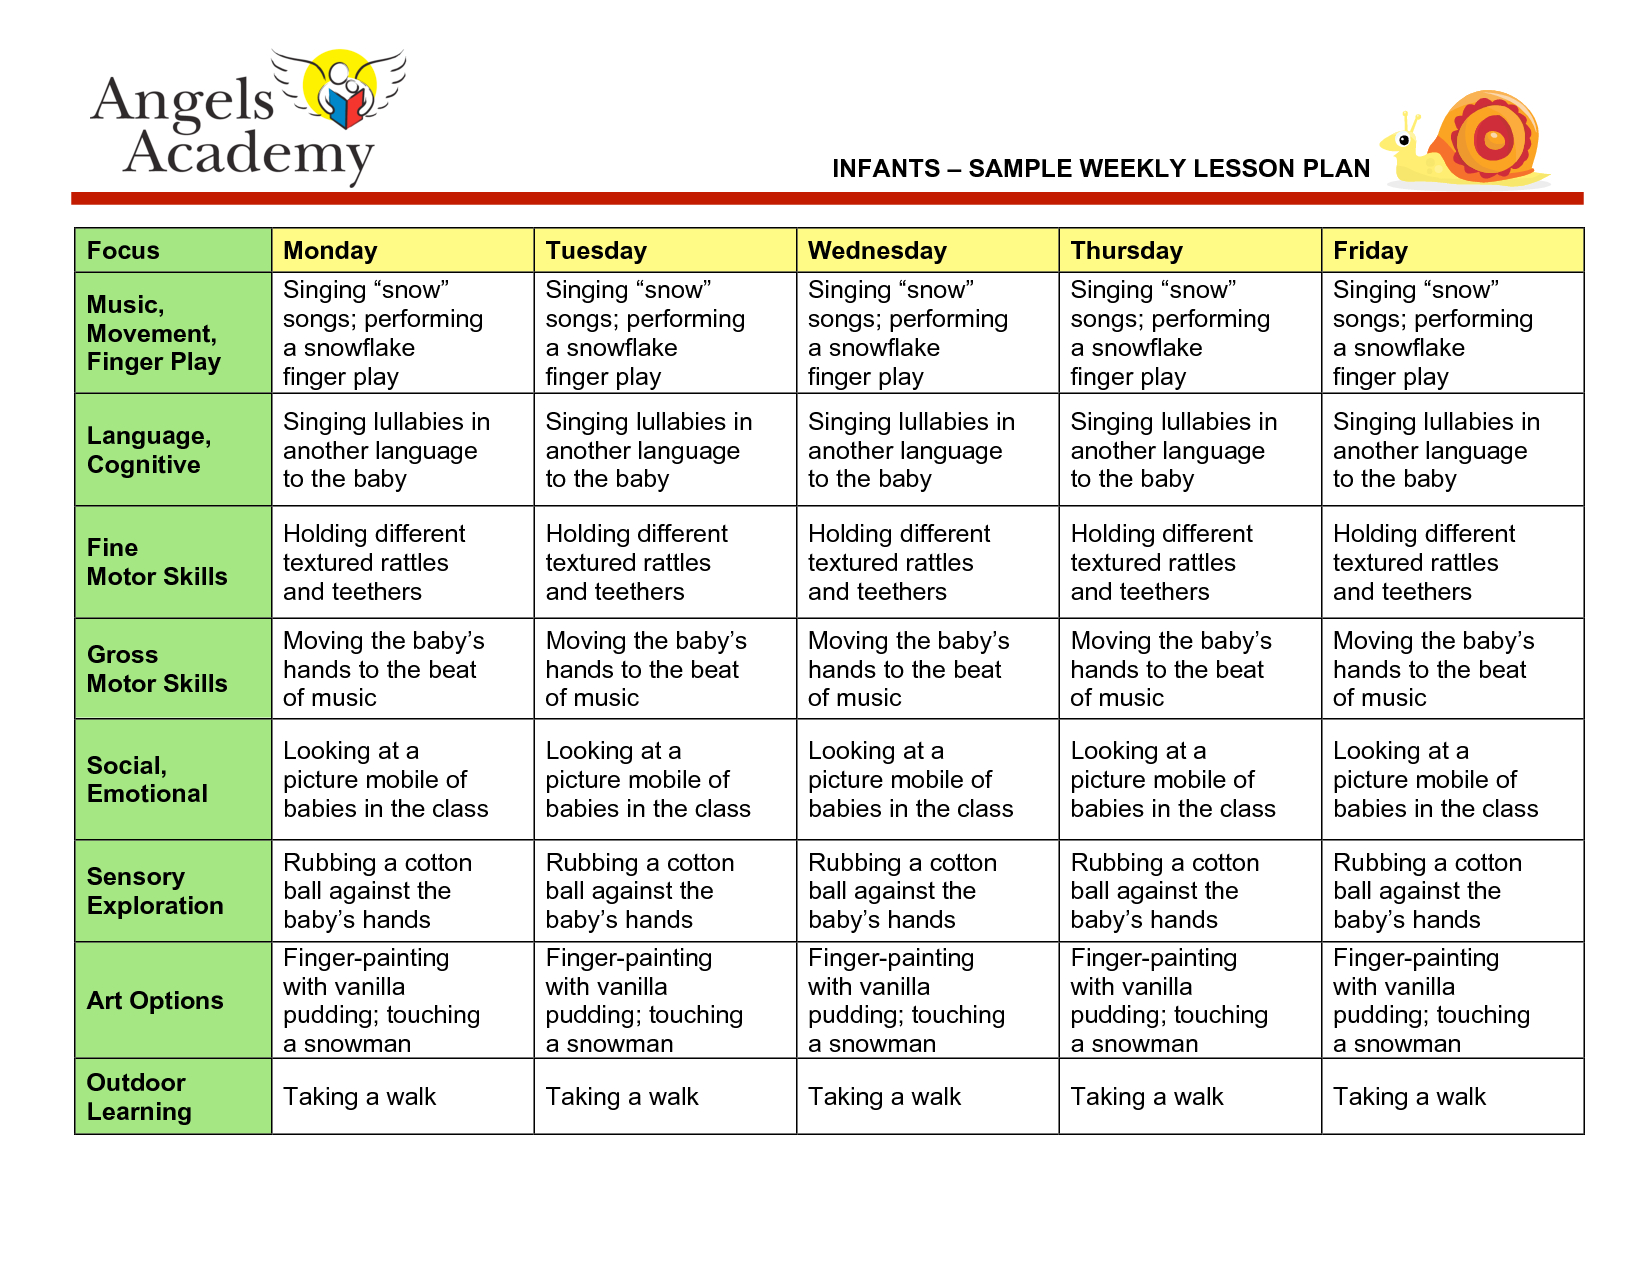 Blank Lesson Plan Template | Infants - Sample Weekly Lesson Plan - Free Printable Infant Lesson Plans